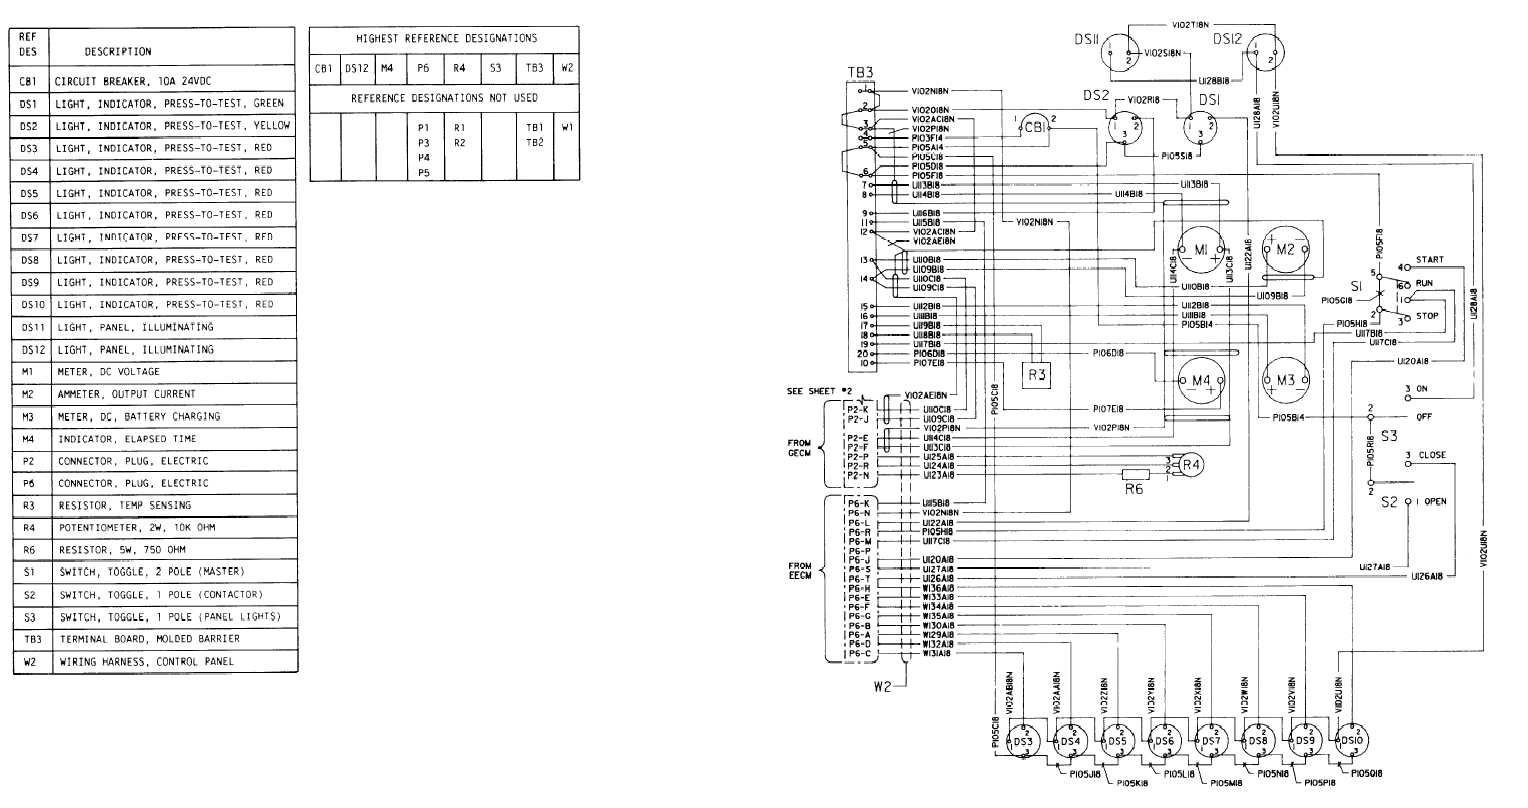 Control Panel Wiring Diagram Pdf Gallery